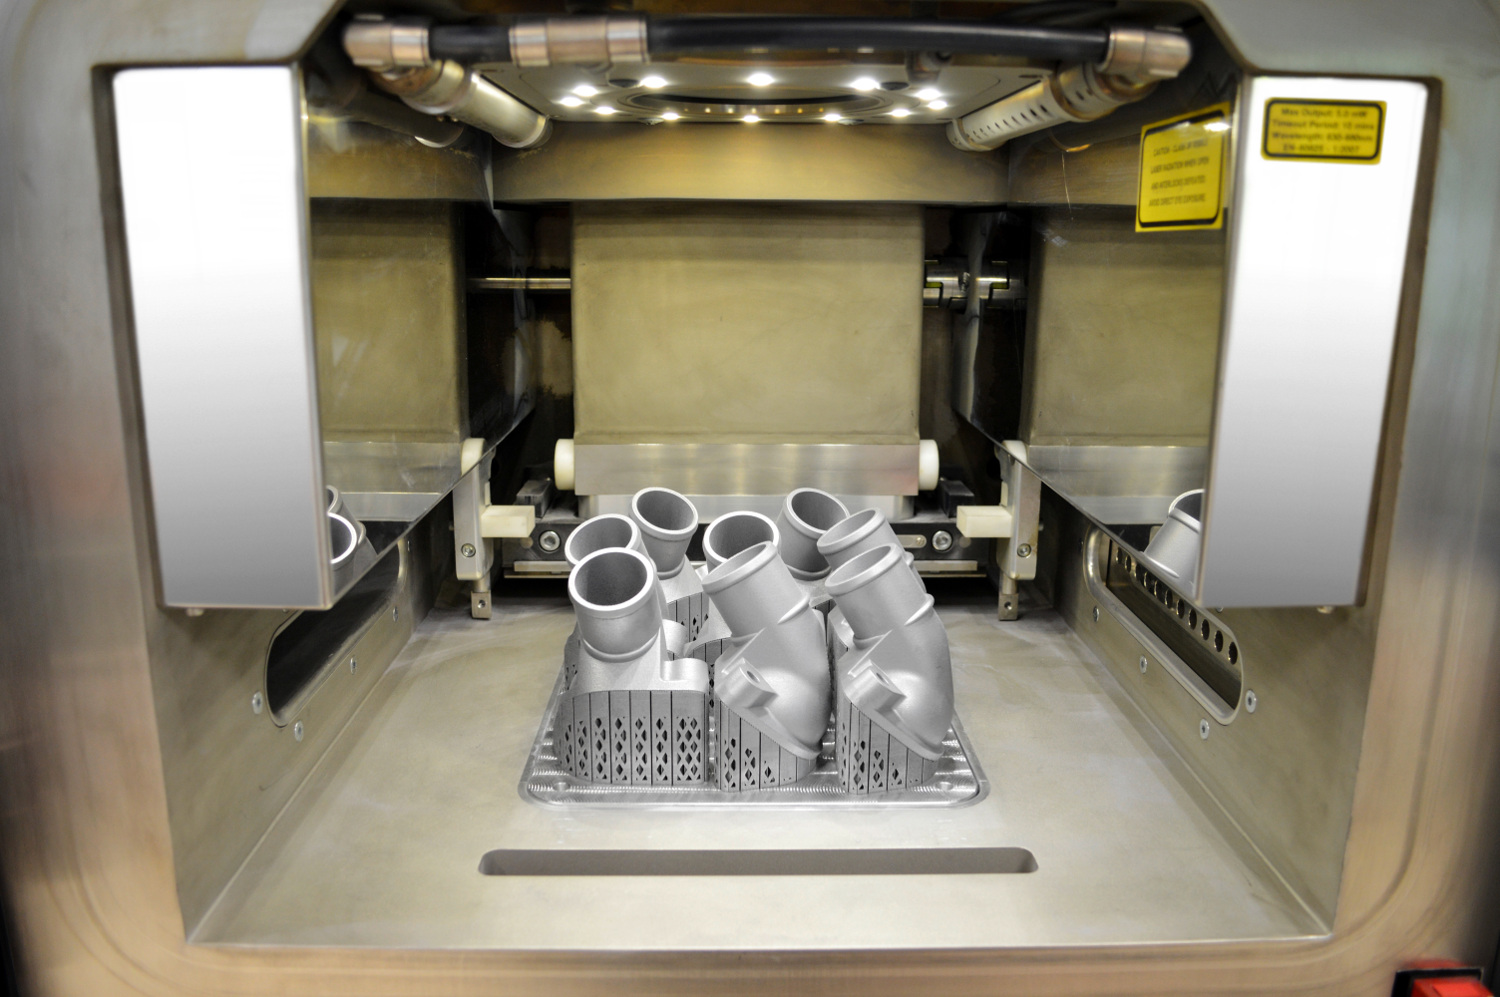 Mercedes-Benz Trucks is printing 3D parts for some of its European distributors. 3D printing could alter supply chains as businesses would not need to ship inventory or components long distances.